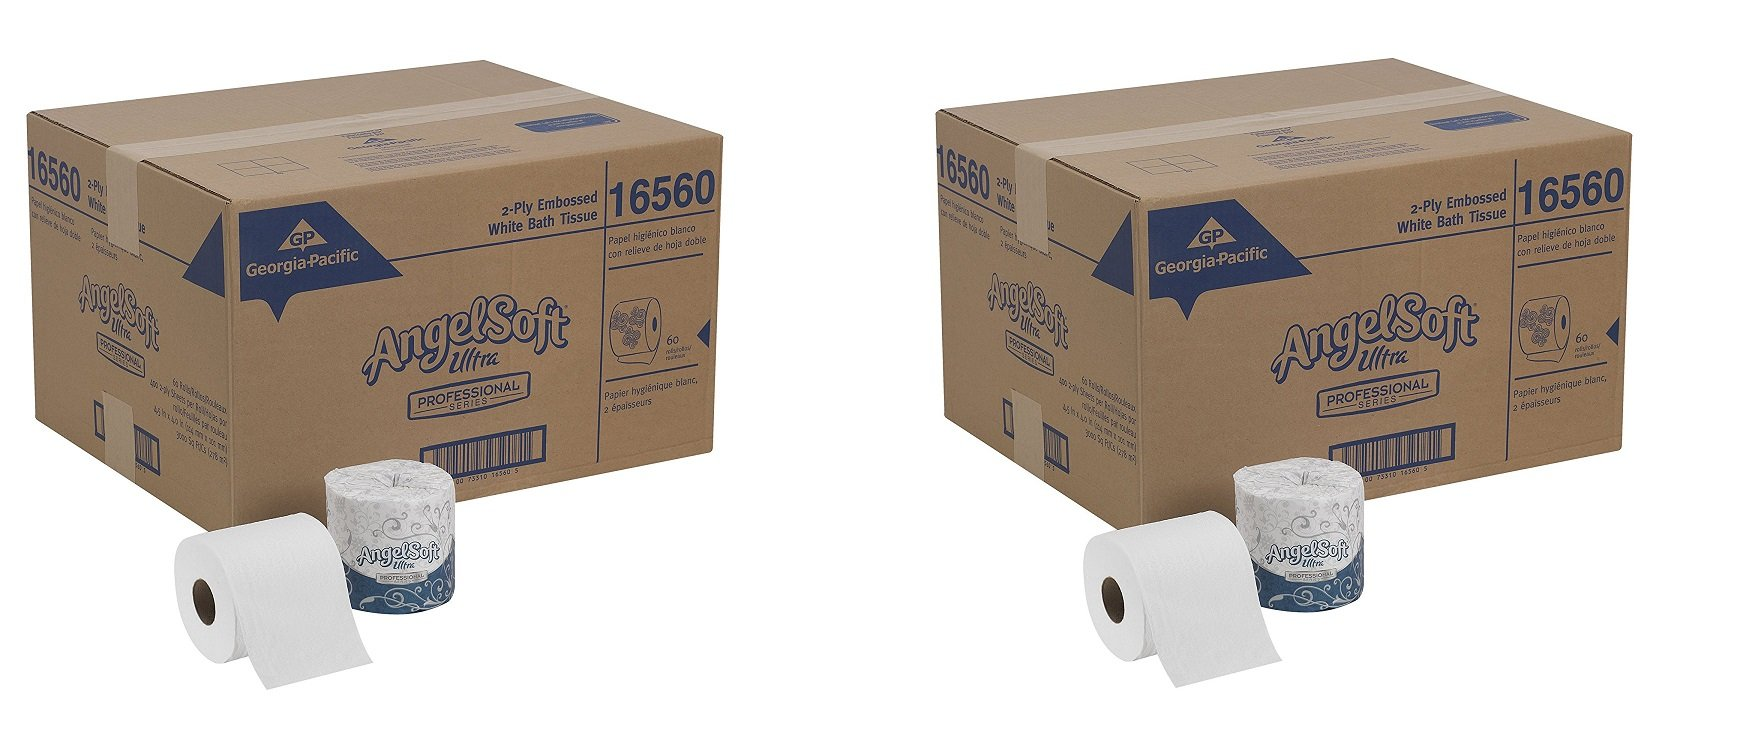 Georgia-Pacific Angel Soft Ultra Professional Series, 16560, White, 2-Ply Premium Embossed Toilet Paper, 4.05'' Length x 4.5'' Width (Case of 60 Rolls, 400 Sheets Per Roll) (2-(Case of 60 Rolls))